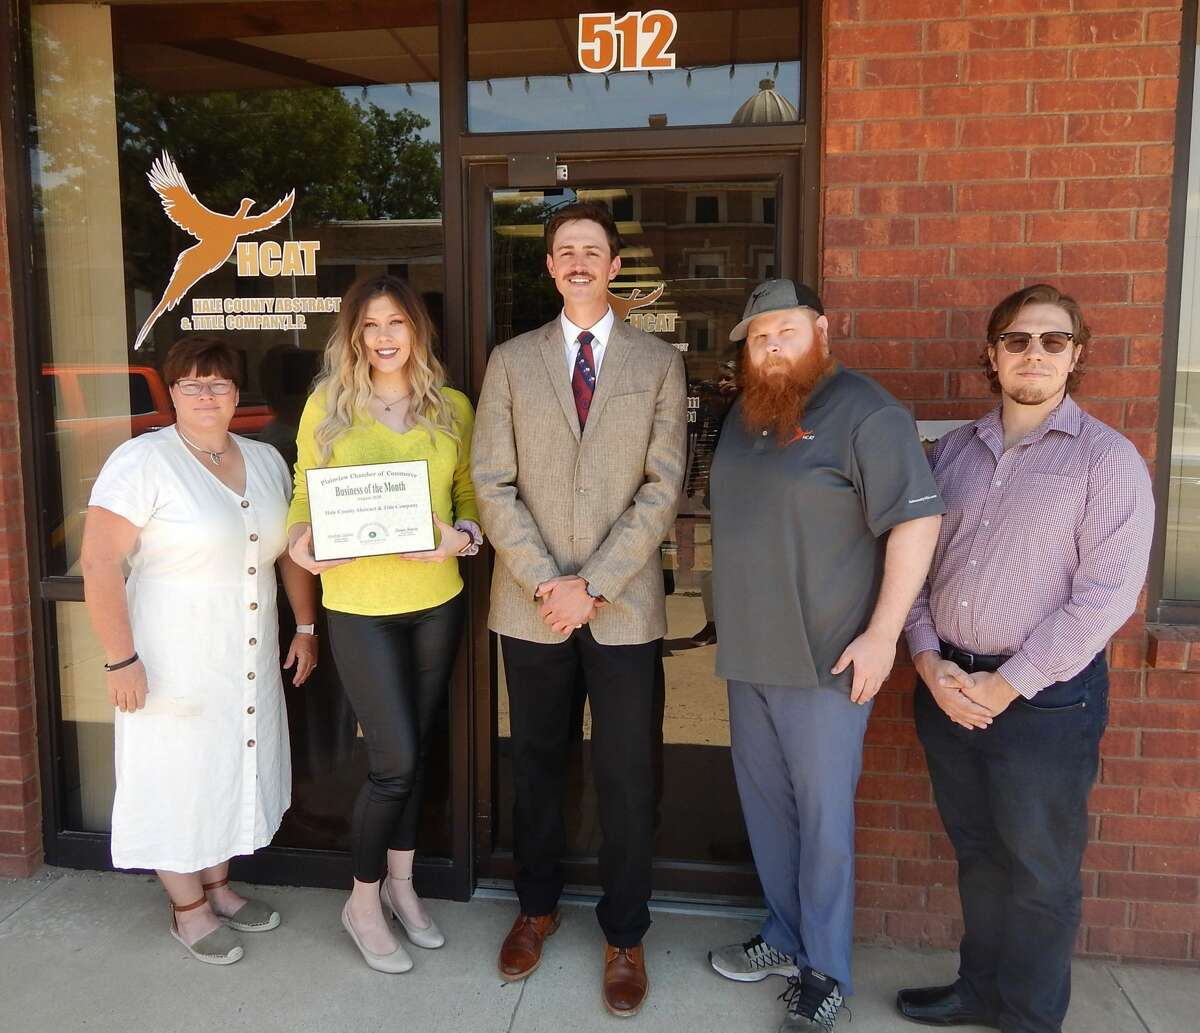 Hale County Abstract & Title Company was named the August Business of the Month by the Plainview Chamber of Commerce.